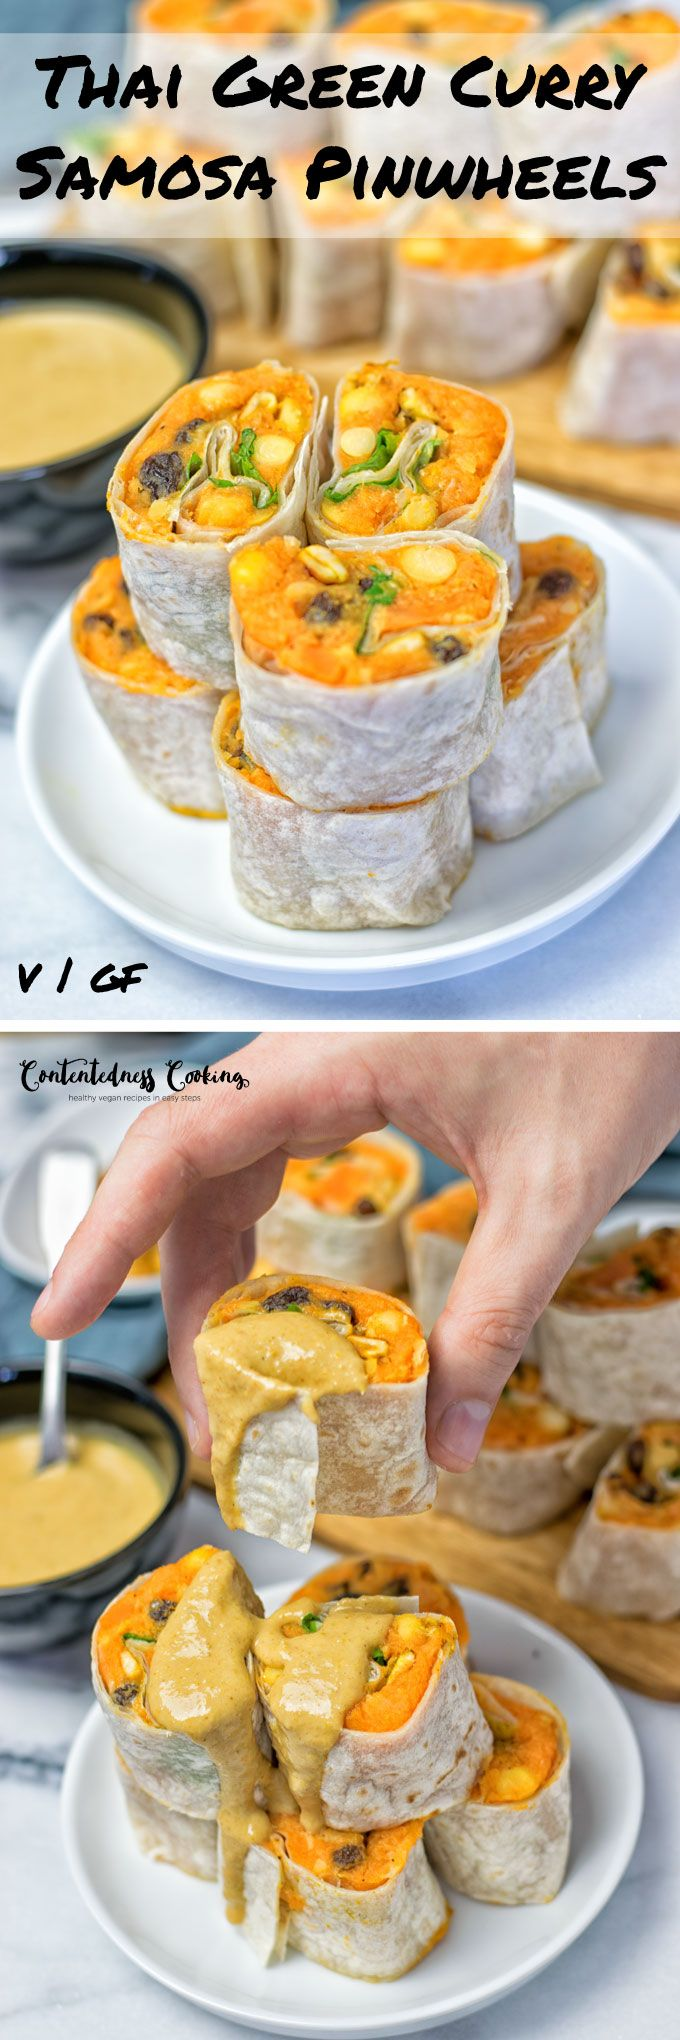 Thai Green Curry Samosa Pinwheels | #vegan #glutenfree www.contentednesscooking.com